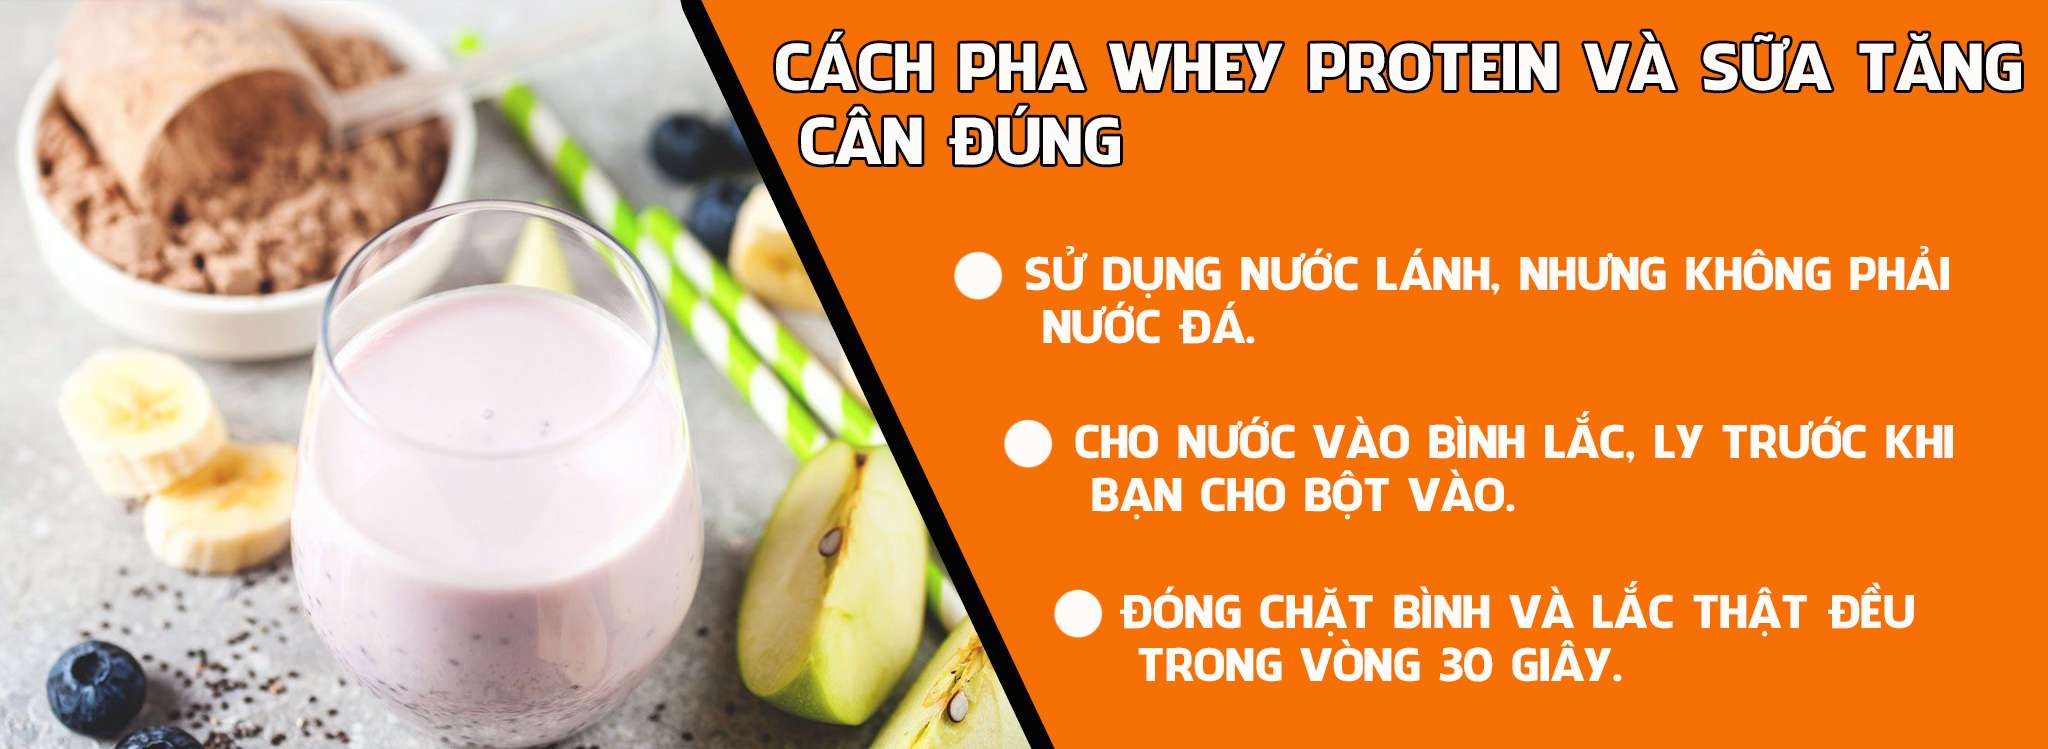 cach pha whey protein dung cach wheyshop 2